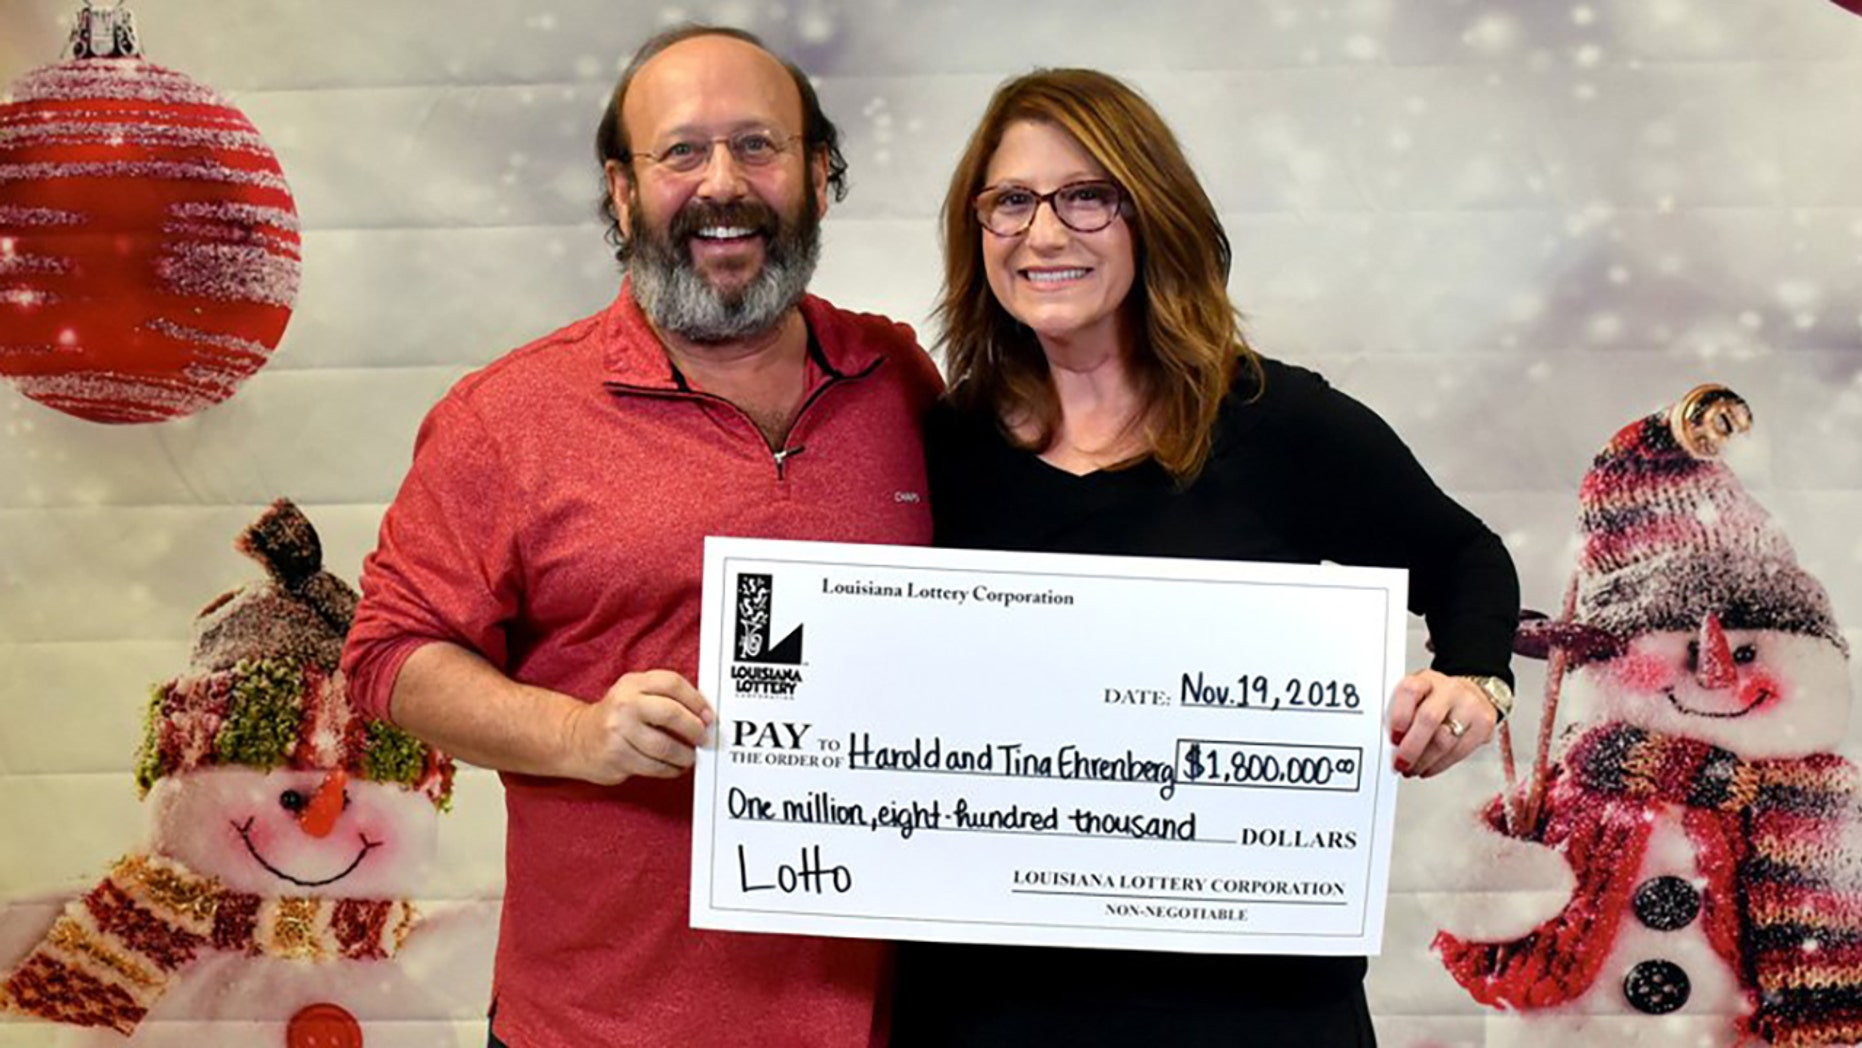 Couple finds winning $1.8 million Lotto ticket while cleaning home